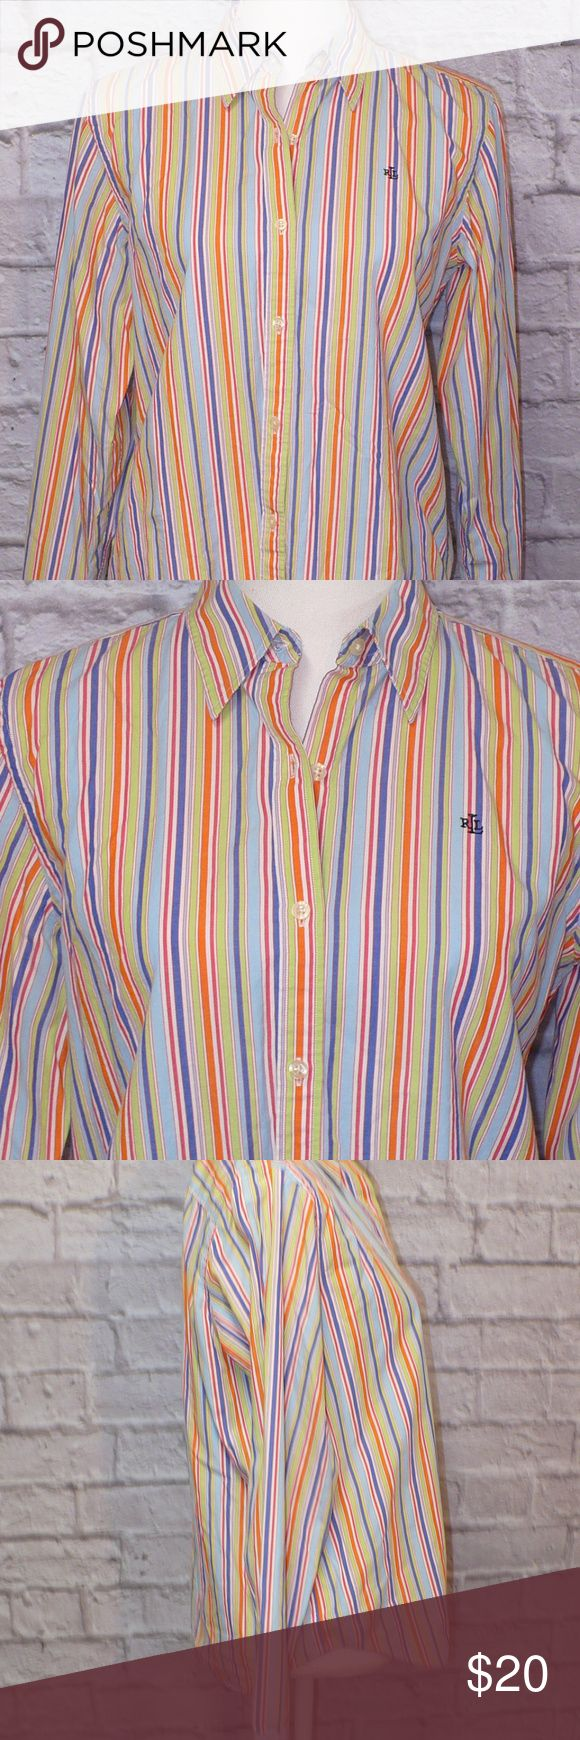 """Ralph Lauren Striped Oxford Shirt Size Medium L12 THE FIT Bust - Armpit to Armpit - About - 21"""" Midsection - Laying Flat - 20.5"""" Length - Top of Shoulder to Bottom - 25.5""""  THE DETAILS Long Sleeves 100% Cotton Women's Size Medium Lauren Ralph Lauren Tops Button Down Shirts"""